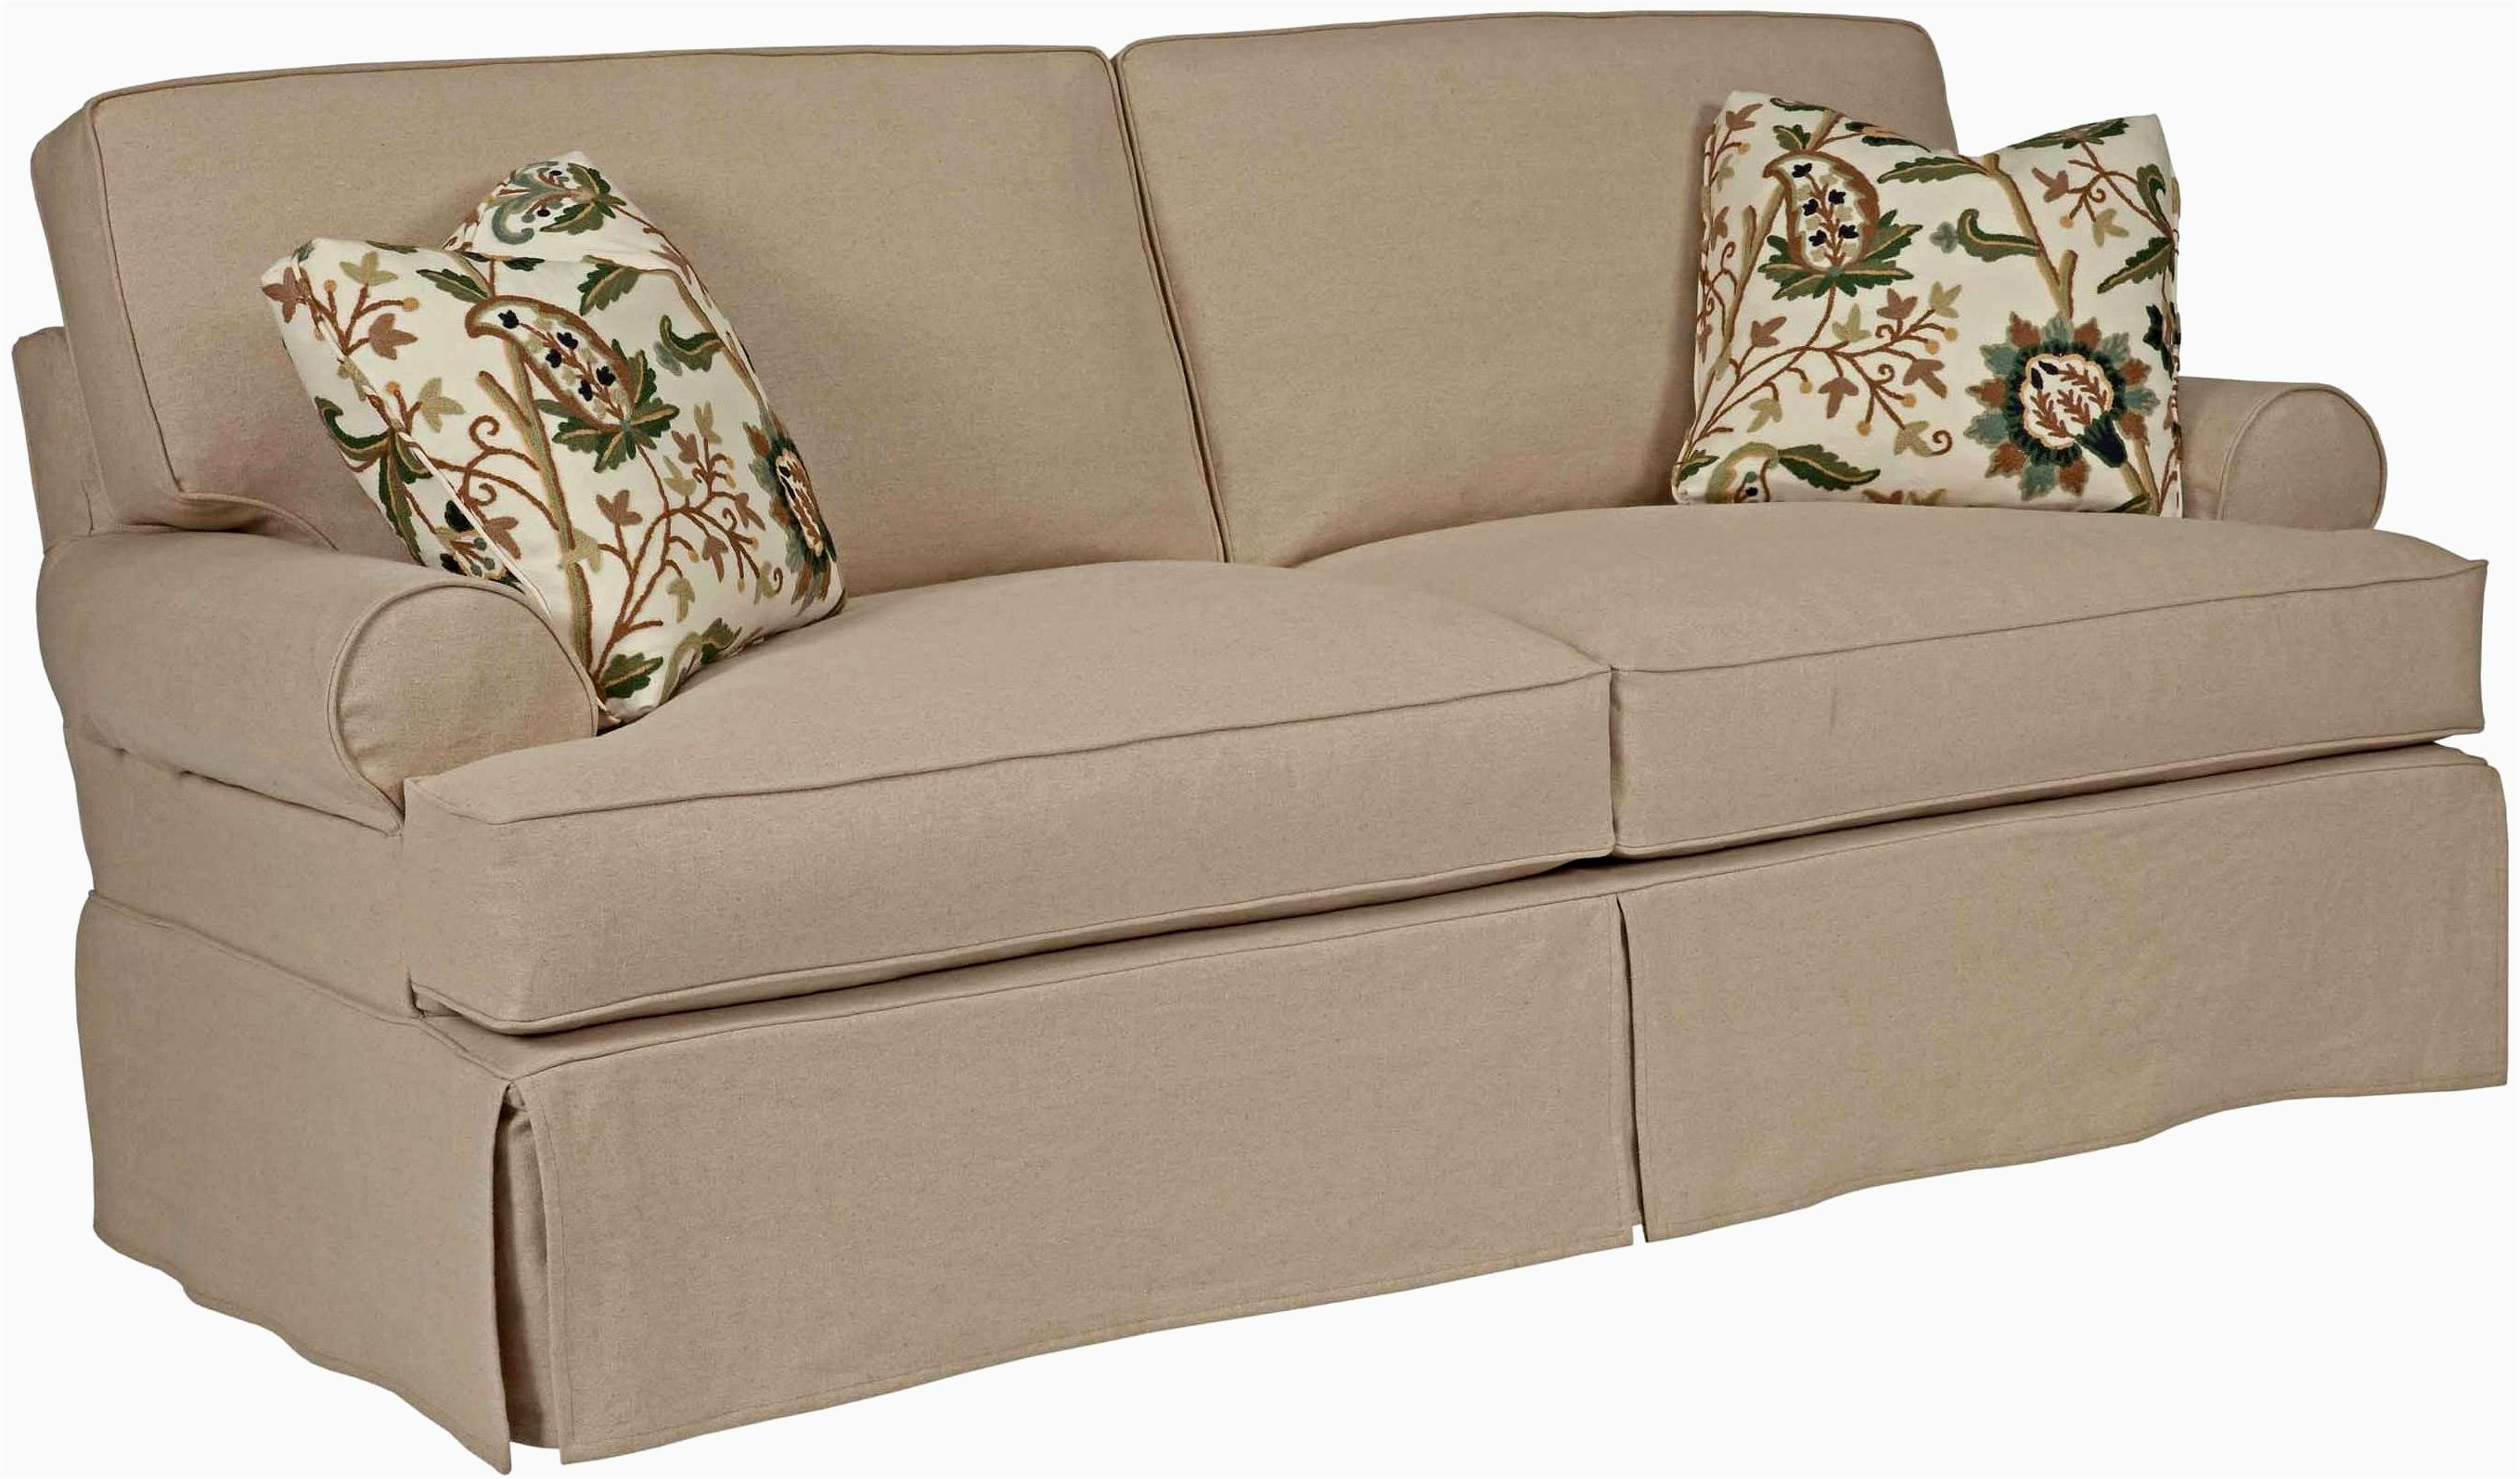 amazing recliner sectional sofa photograph-Wonderful Recliner Sectional sofa Plan